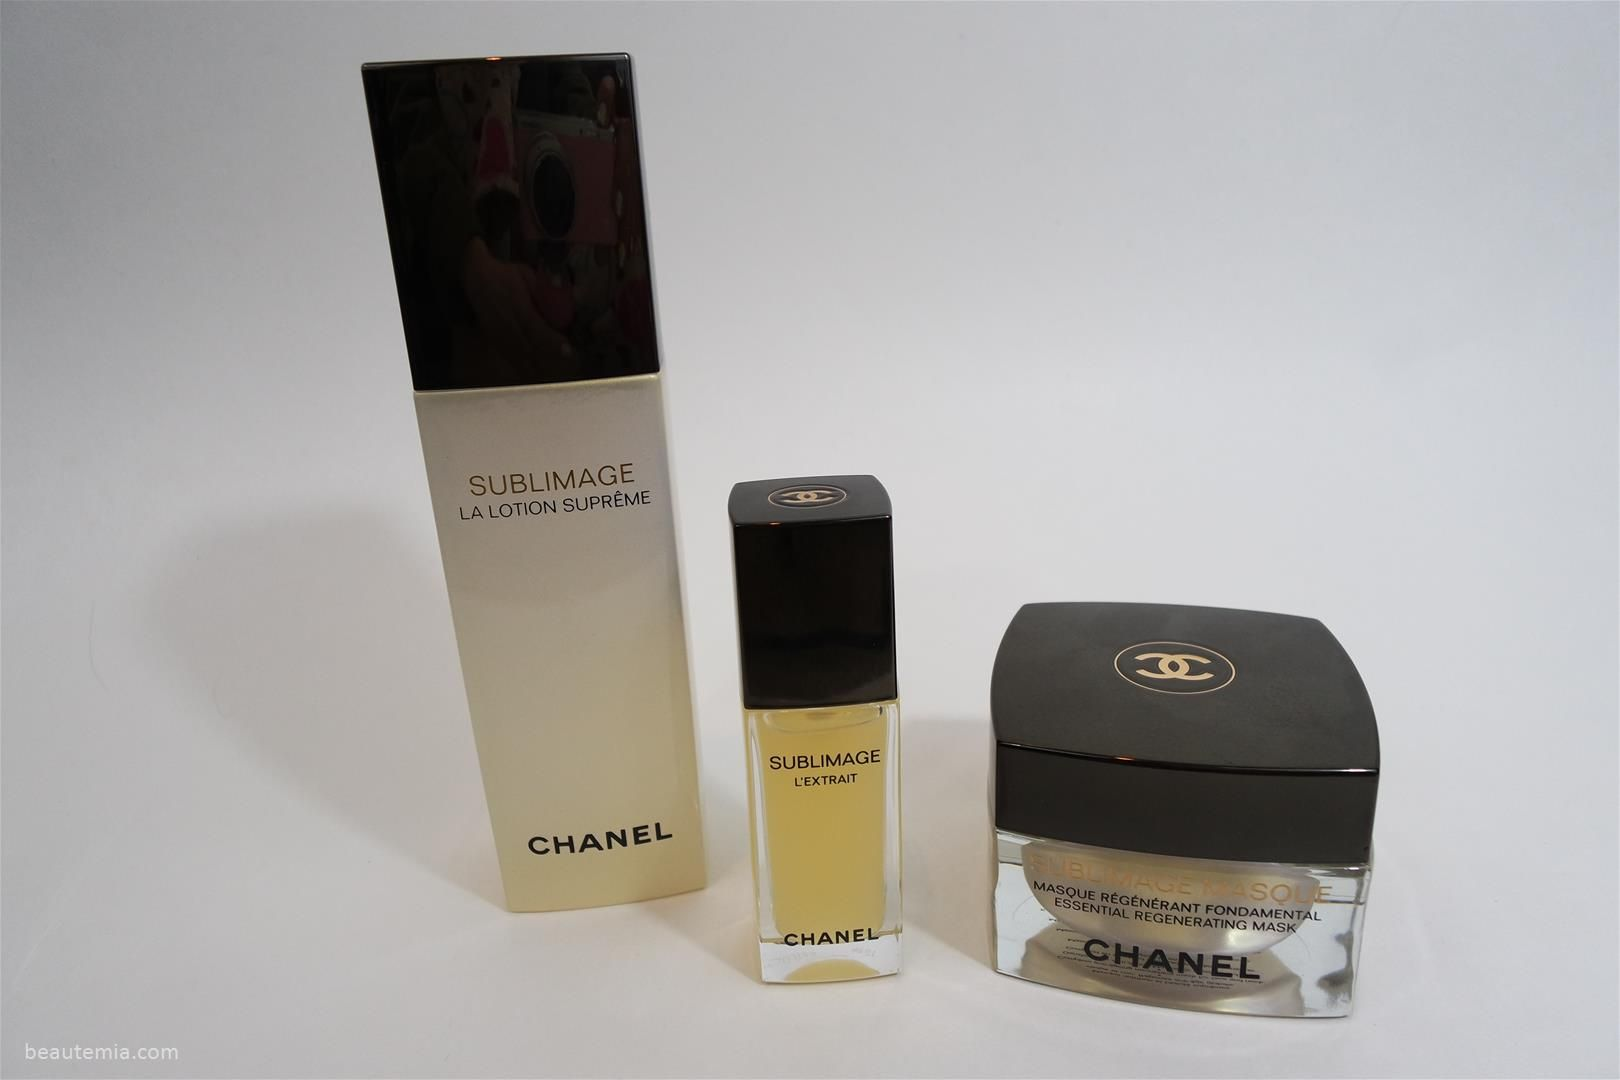 Chanel sublimage la lotion supreme, Chanel La Solution 10 de Chanel, Chanel Sublimage L'Essence Fondamentale, Chanel Sublimage L'Extrait de Crème, chanel LES BEIGES Sheer Healthy Glow Moisturizing Tint SPF 30, chanel LES BEIGES Sheer Healthy Glow Moisturizing Tint SPF 30 swatches, LES BEIGES Sheer Healthy Glow Moisturizing Tint SPF 30 shade light, chanel sunscreen & chanel sublimage skincare